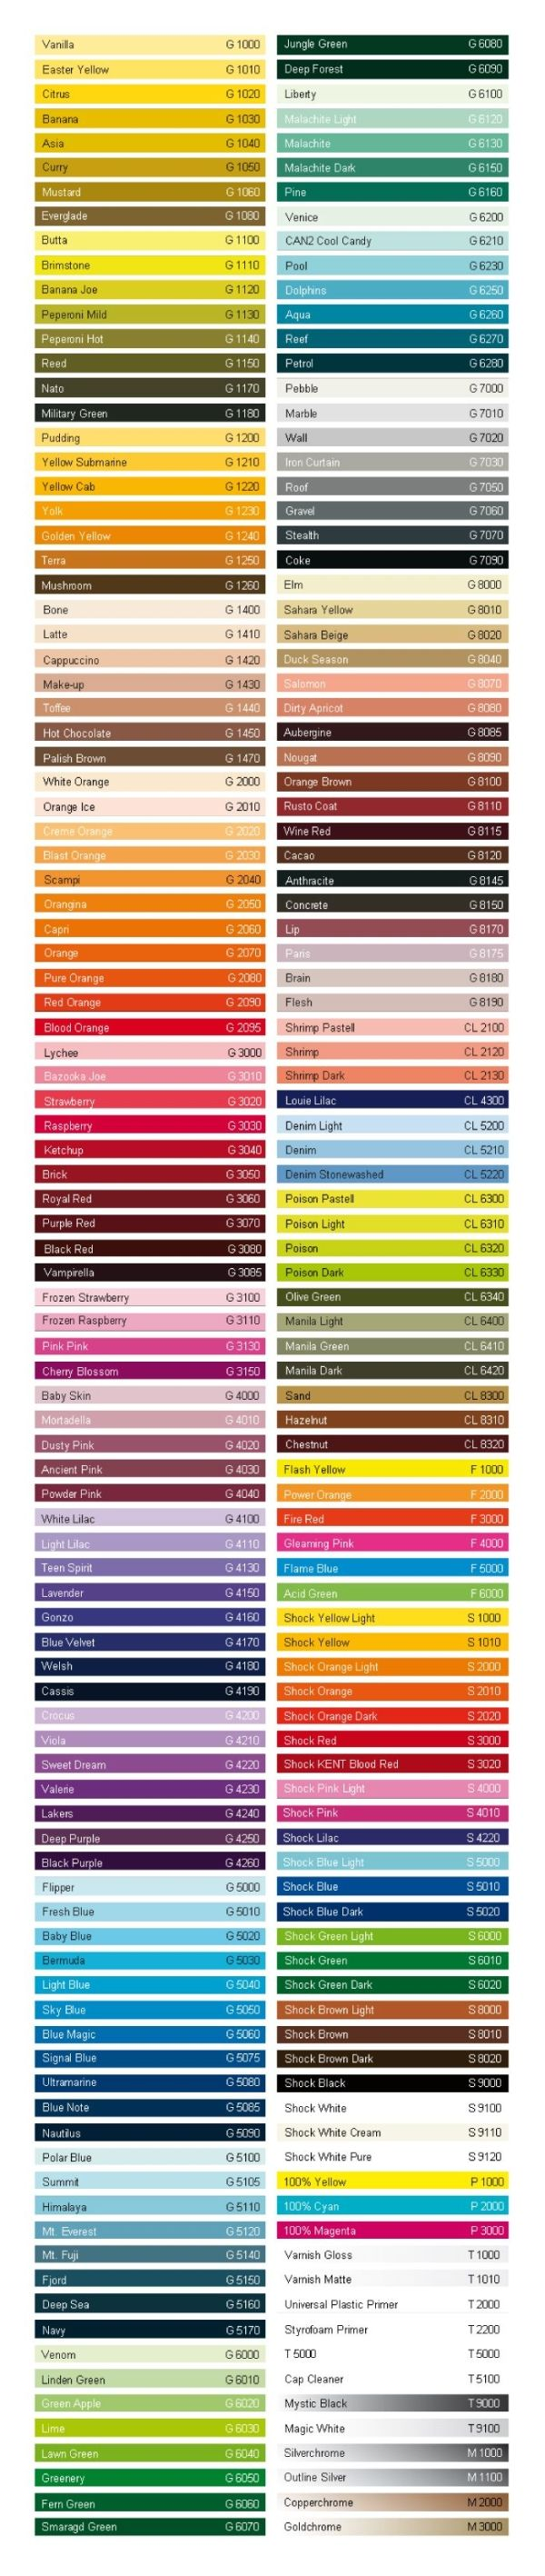 pantone color names paint colors etc pinterest farben farbpalette und palette. Black Bedroom Furniture Sets. Home Design Ideas